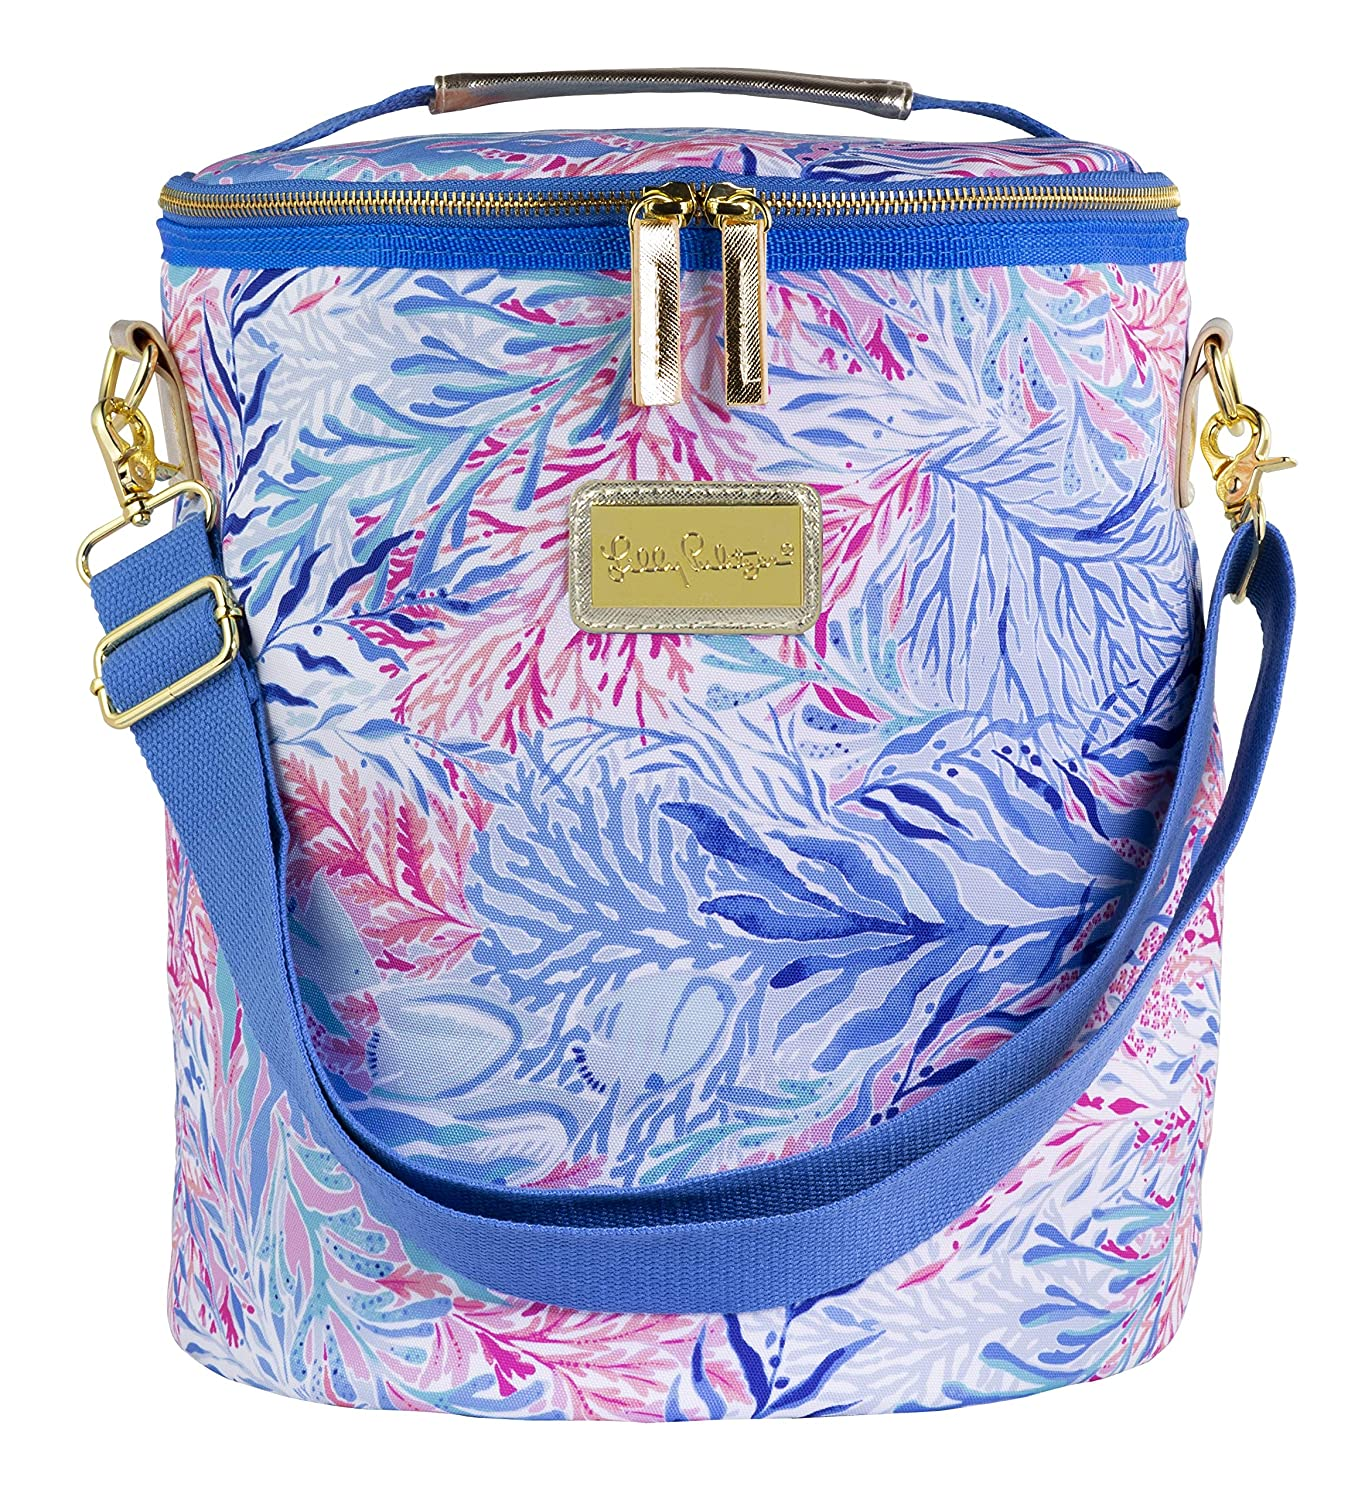 Lilly Pulitzer Insulated Beach Cooler with Adjustable Strap, Kaleidoscope Coral